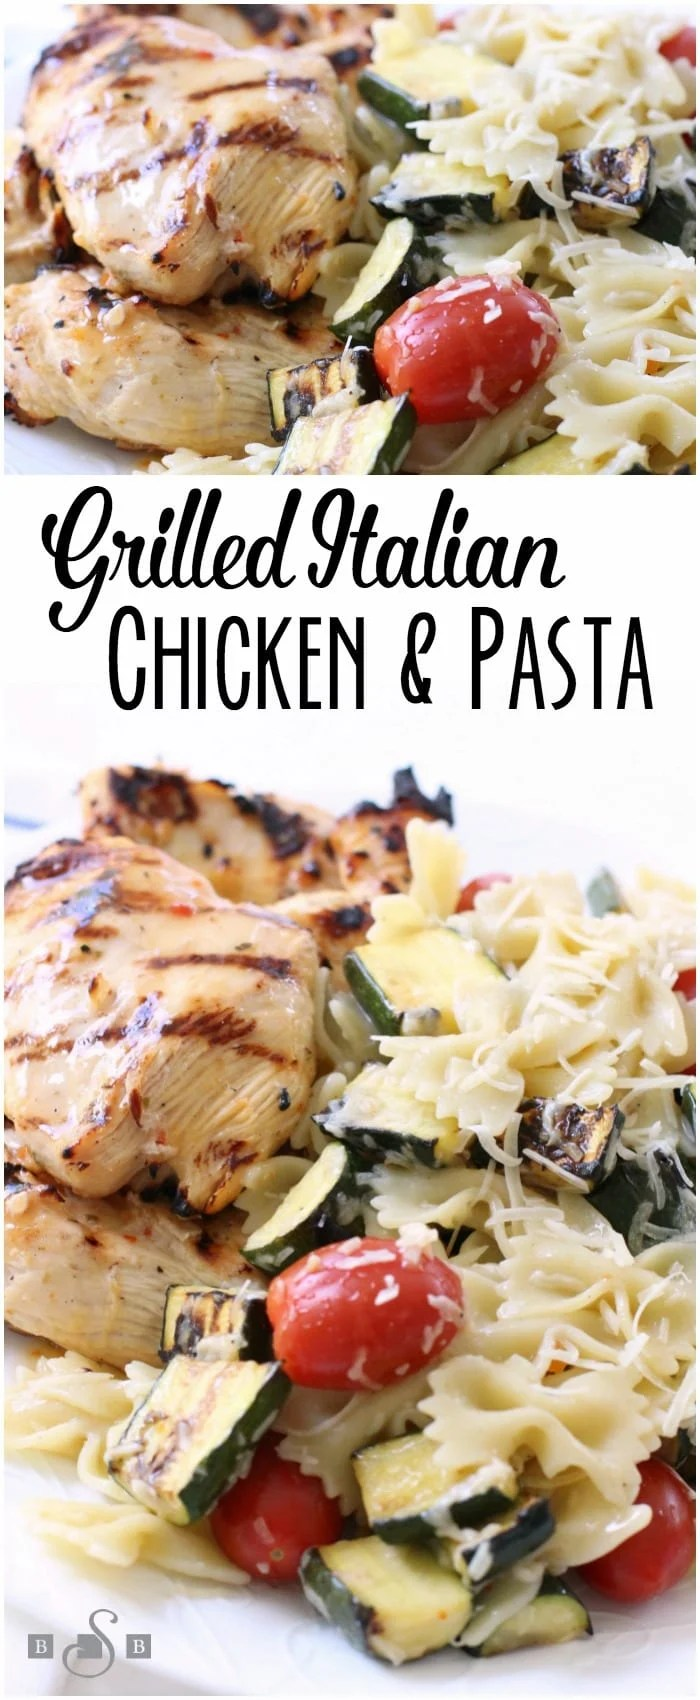 Grilled Italian Chicken is a simple & delicious summer dinner. Italian dressing adds fantastic flavor in the tender grilled chicken & vegetables.